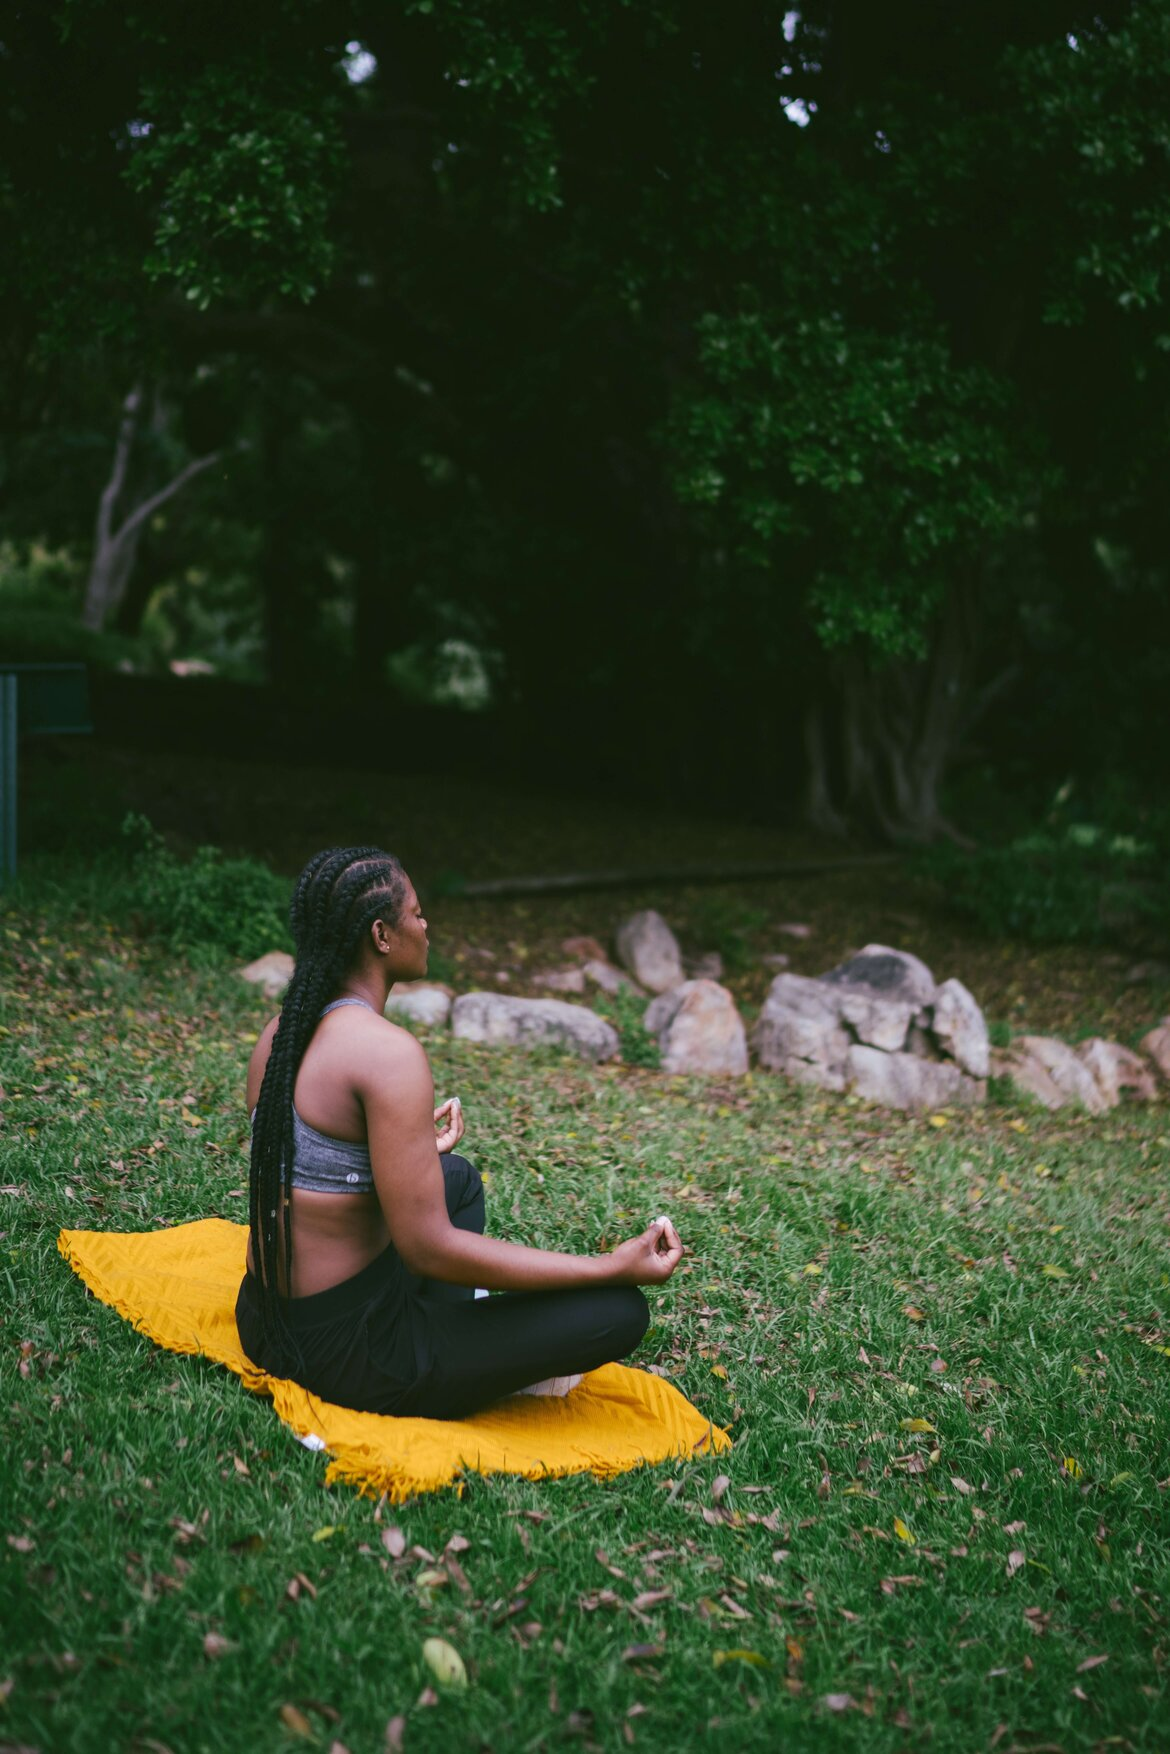 Black girl with box braids meditating outside on the grass, sat on a yellow blanket